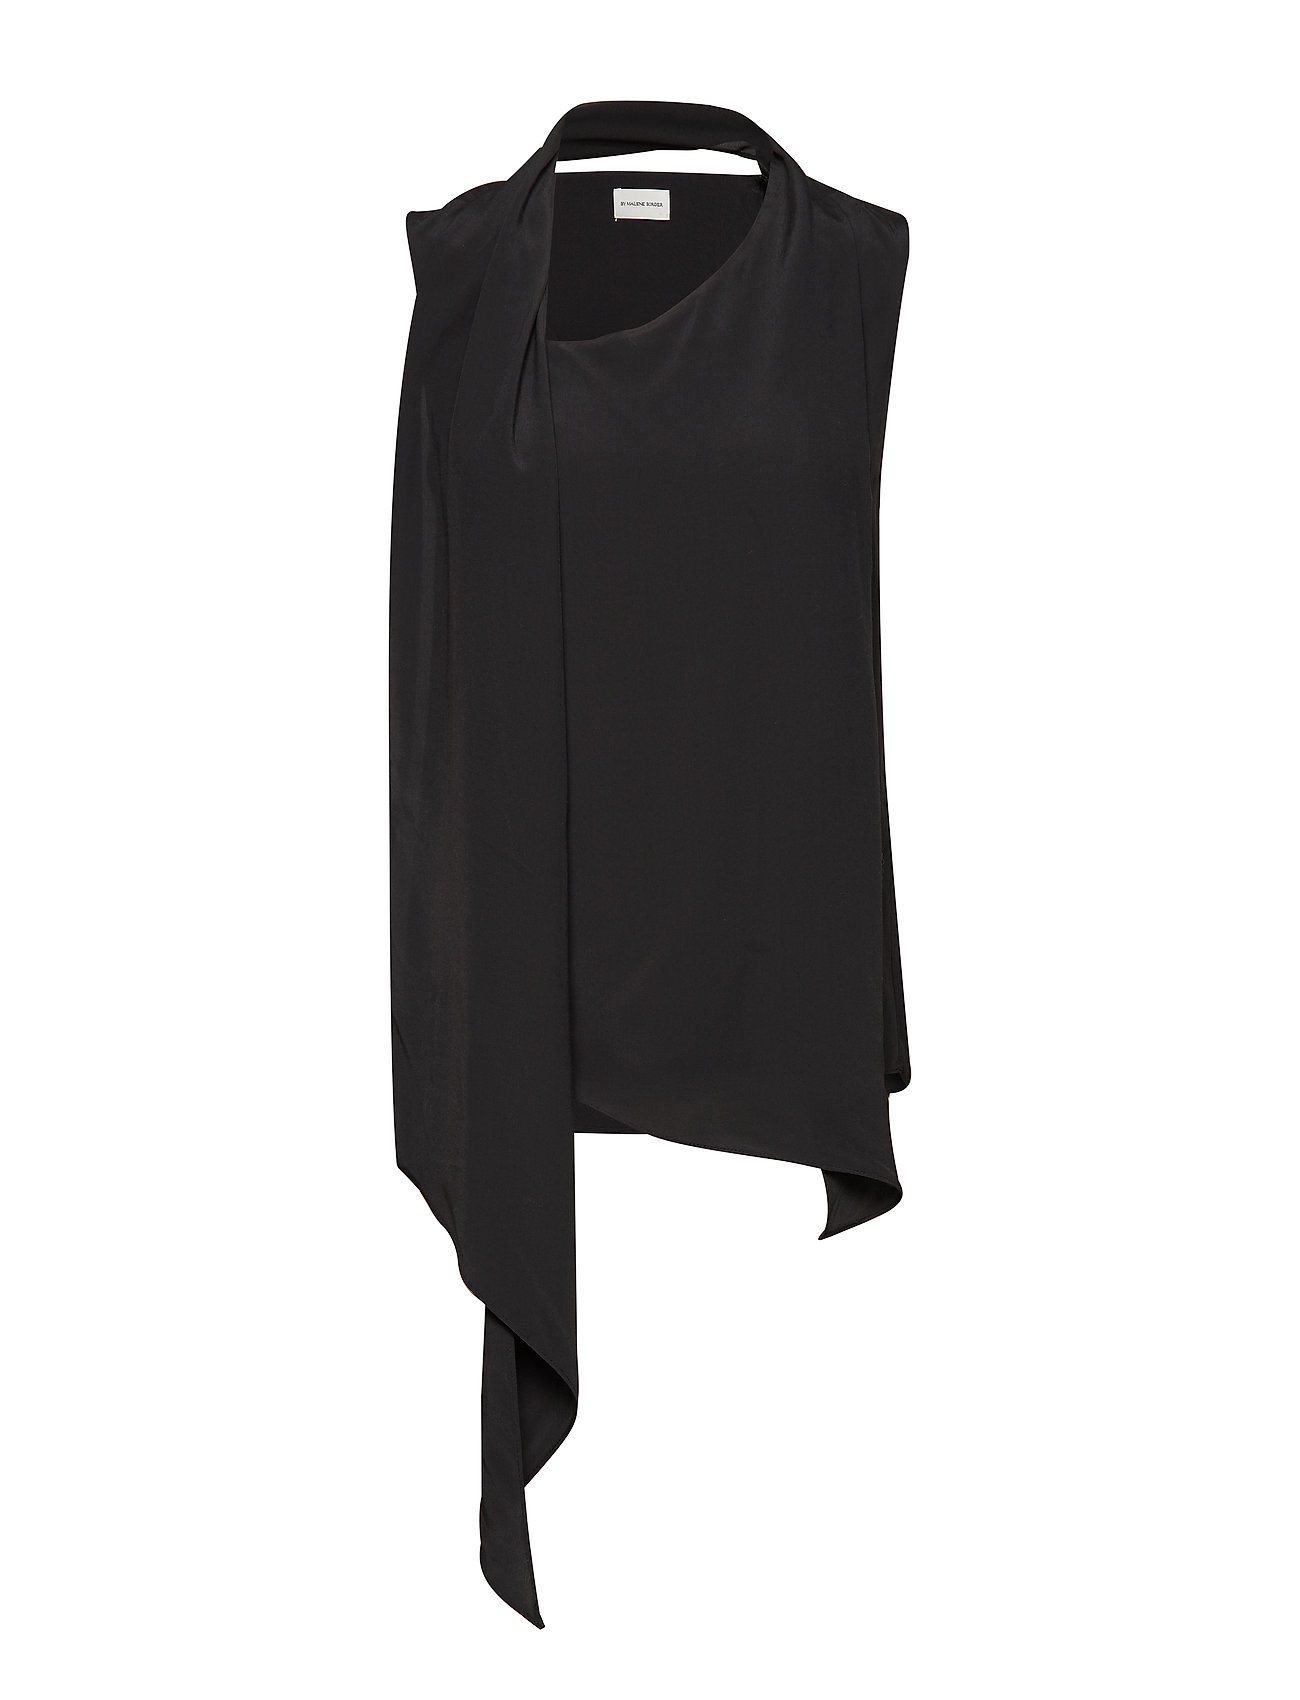 By Malene Birger BLO1012S91 - BLACK